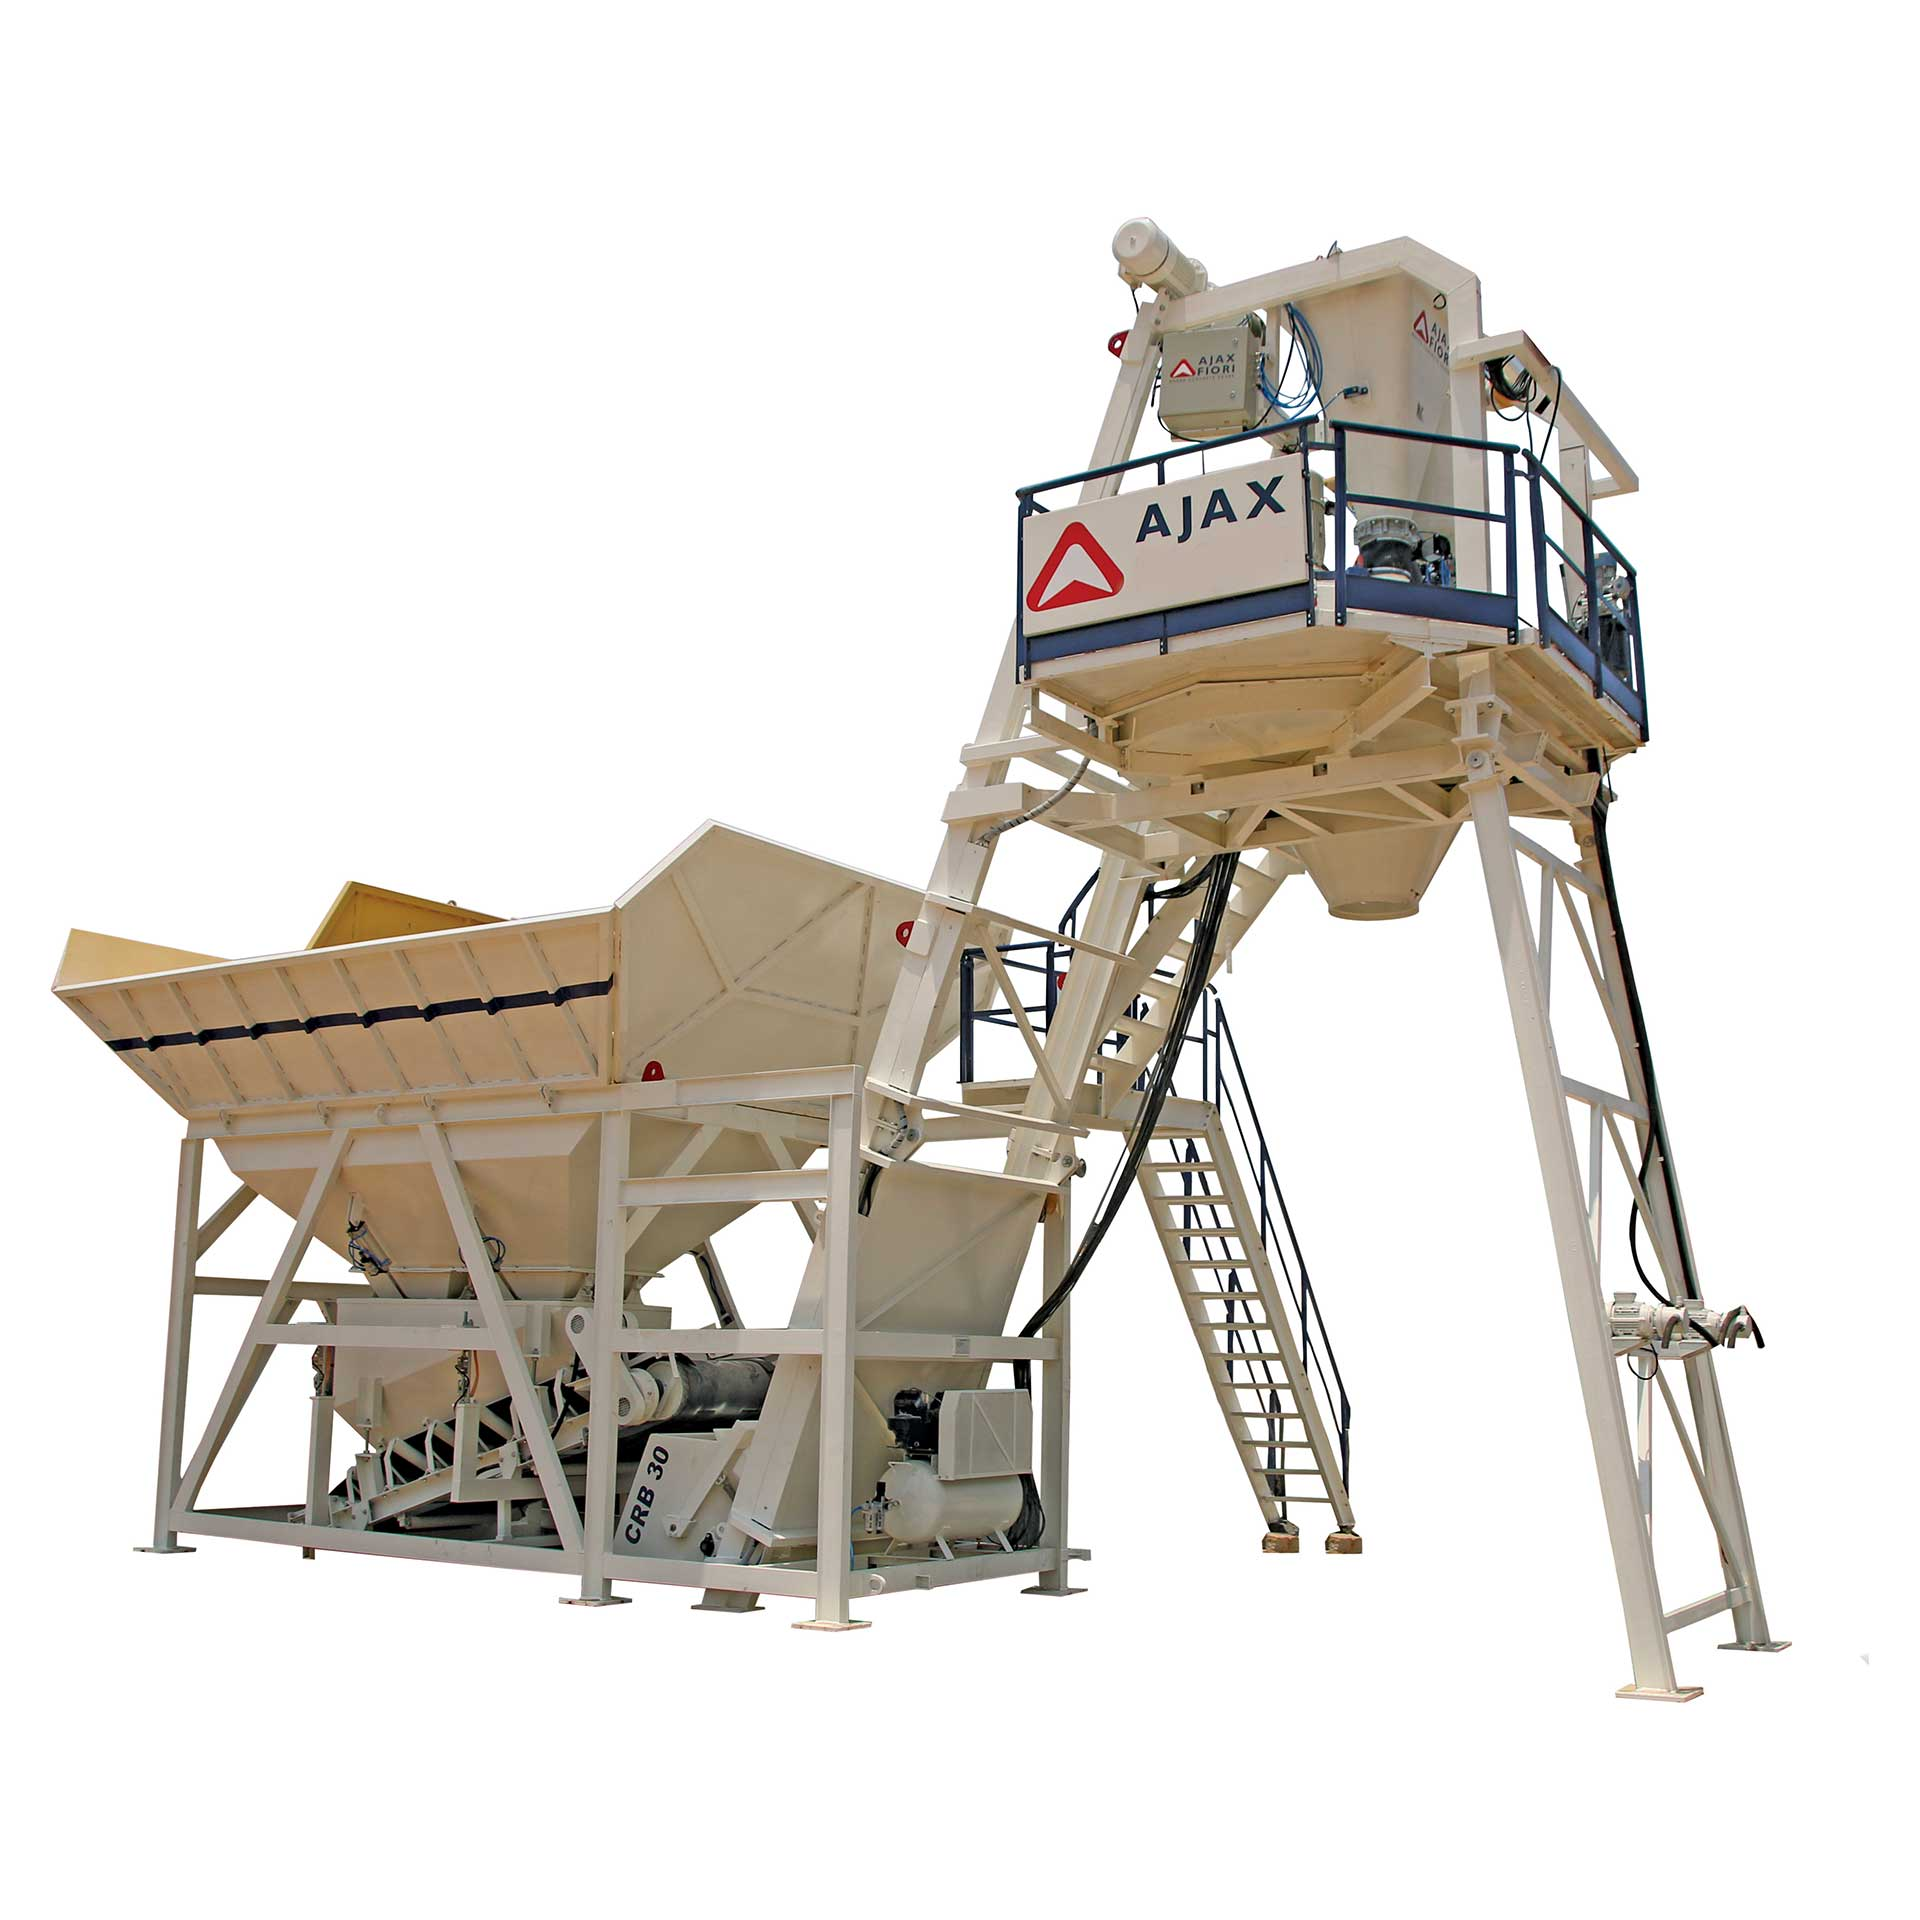 Ajax Compact Reduced Bin Batching Plant CRB 30